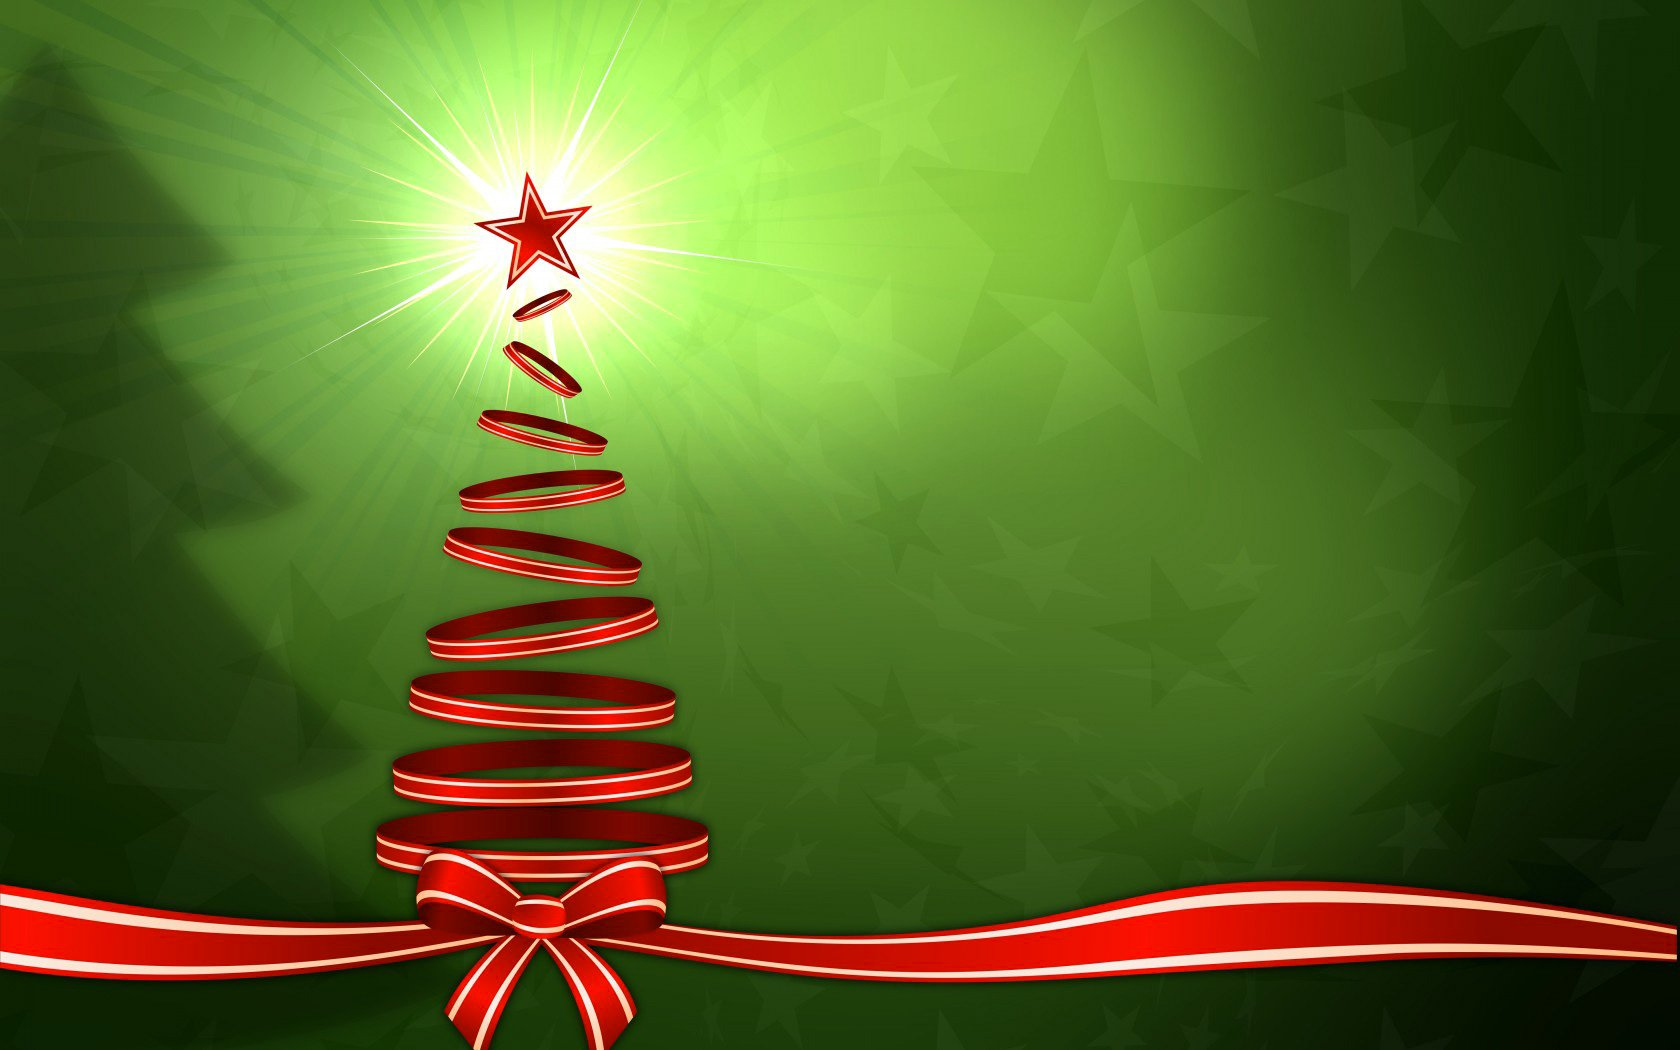 Free Download Christmas Red Tree Green Background Gallery